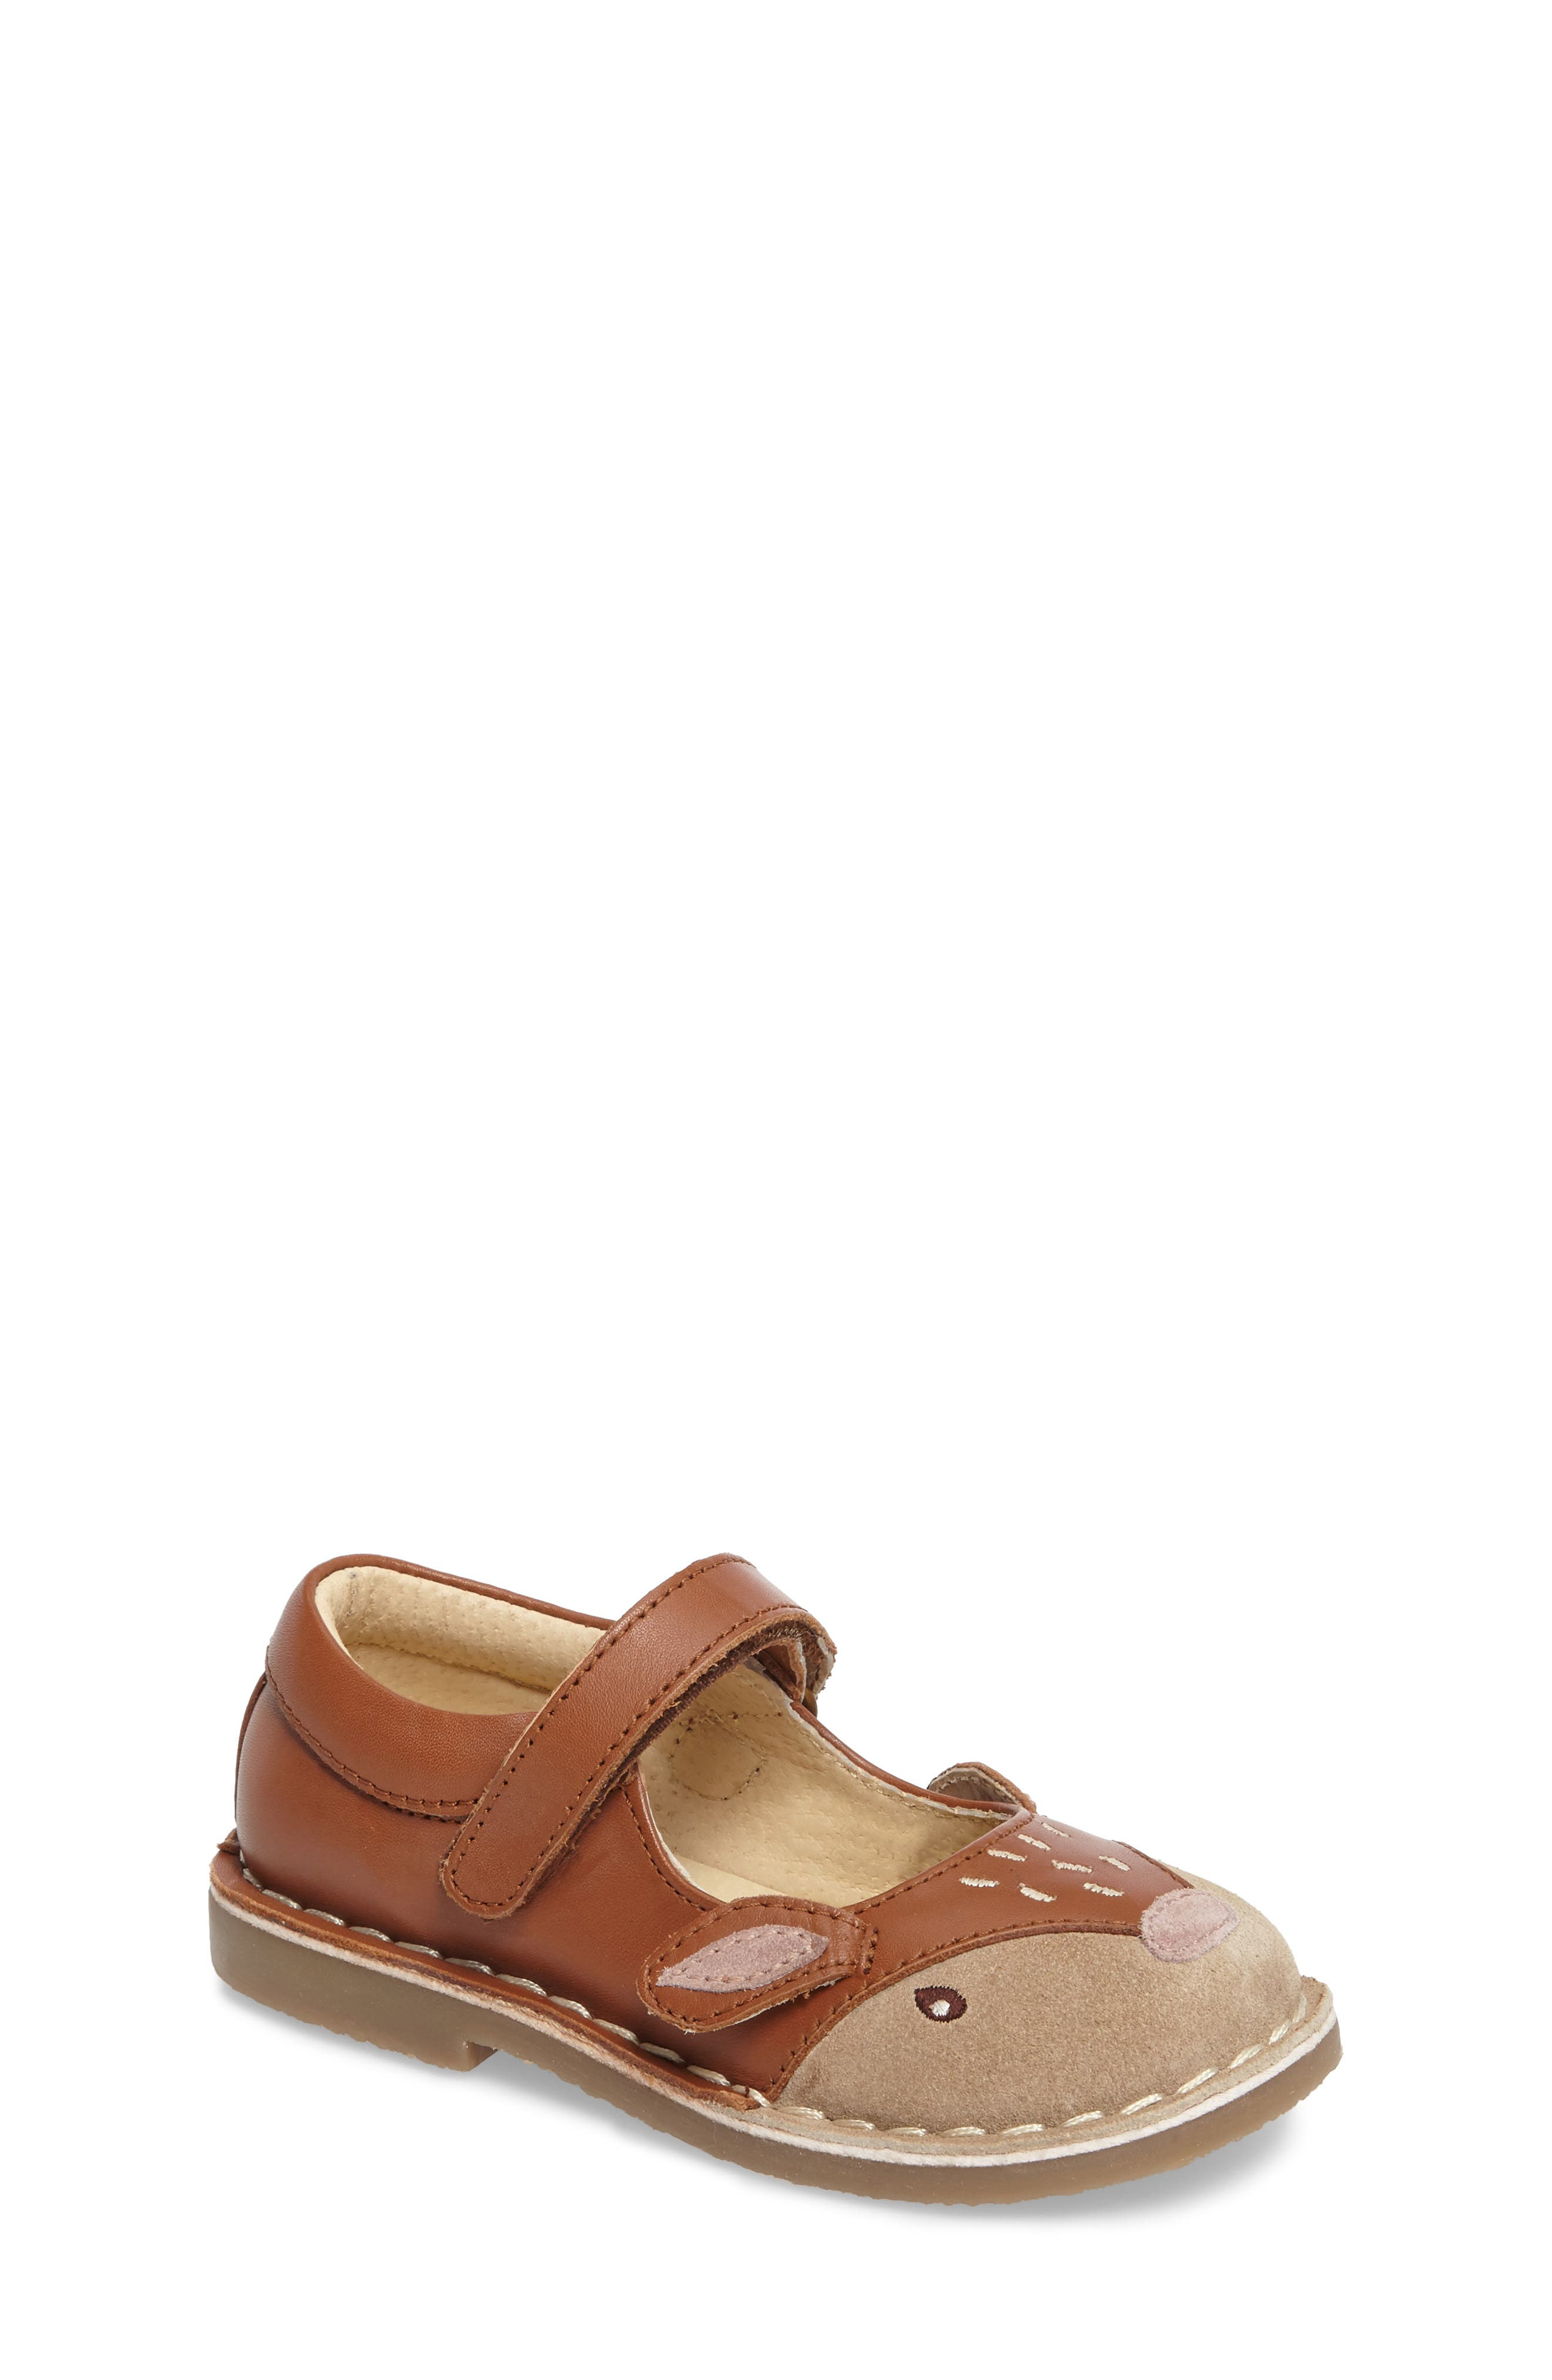 Animal Mary Jane Flat,                         Main,                         color, 214